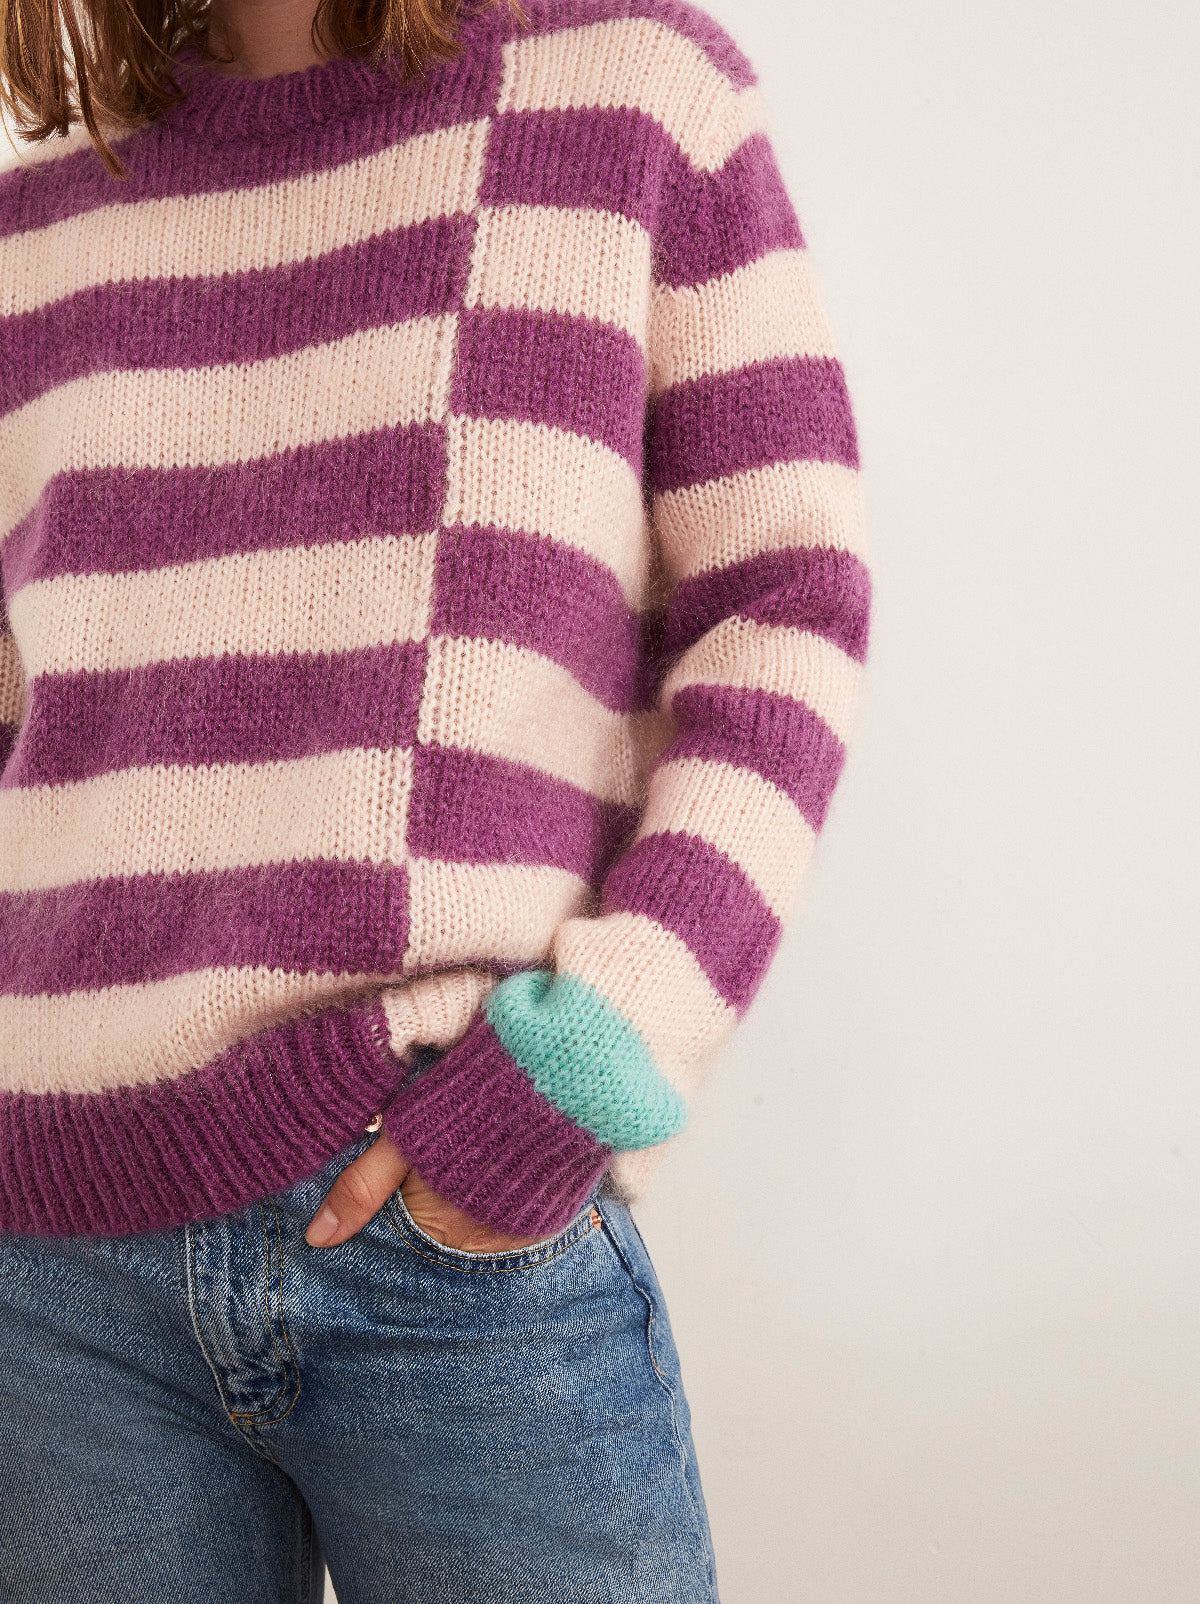 Karla Violet Mohair Striped Sweater